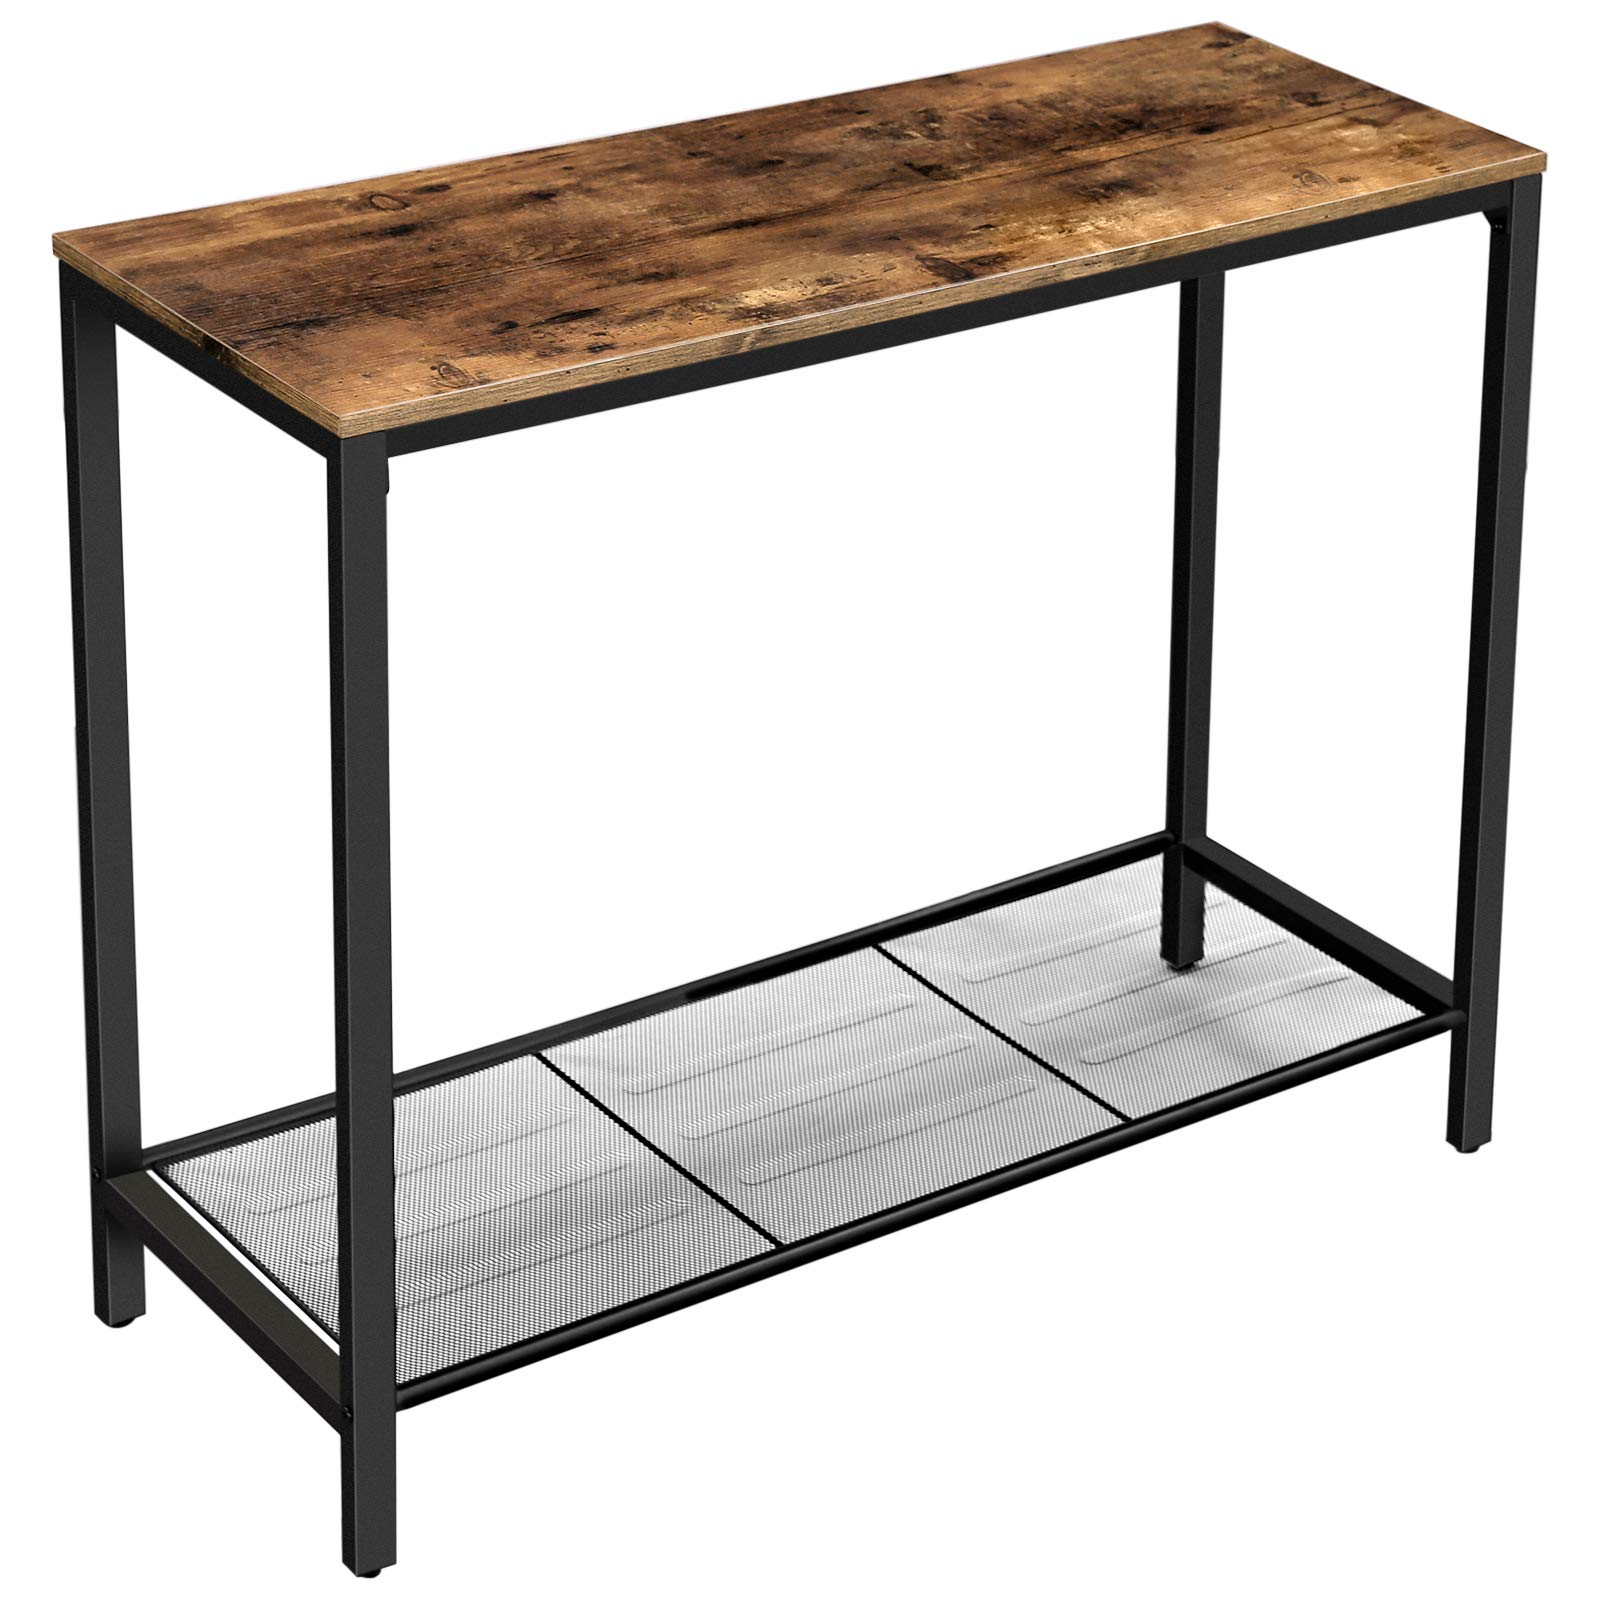 VASAGLE INDESTIC Console Table, Sofa Table, Entryway Table with Metal Mesh Shelf, 39.4 x 13.8 x 31.5 Inches, for Hallway, Entryway, Living Room, Industrial Rustic Brown ULNT86X by VASAGLE